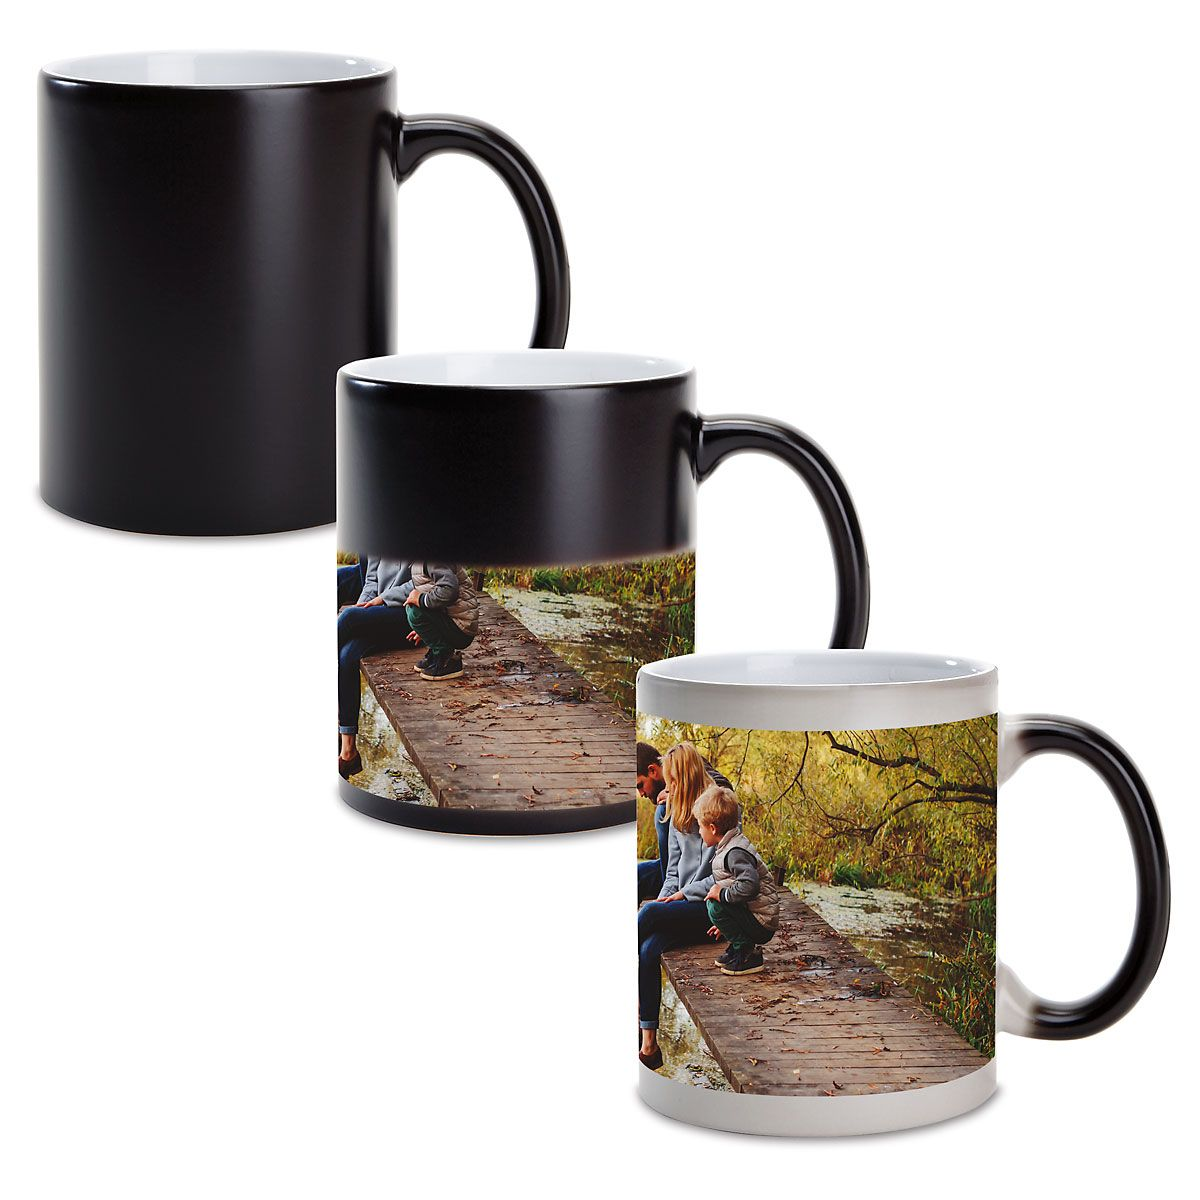 Panoramic Ceramic Photo Mug